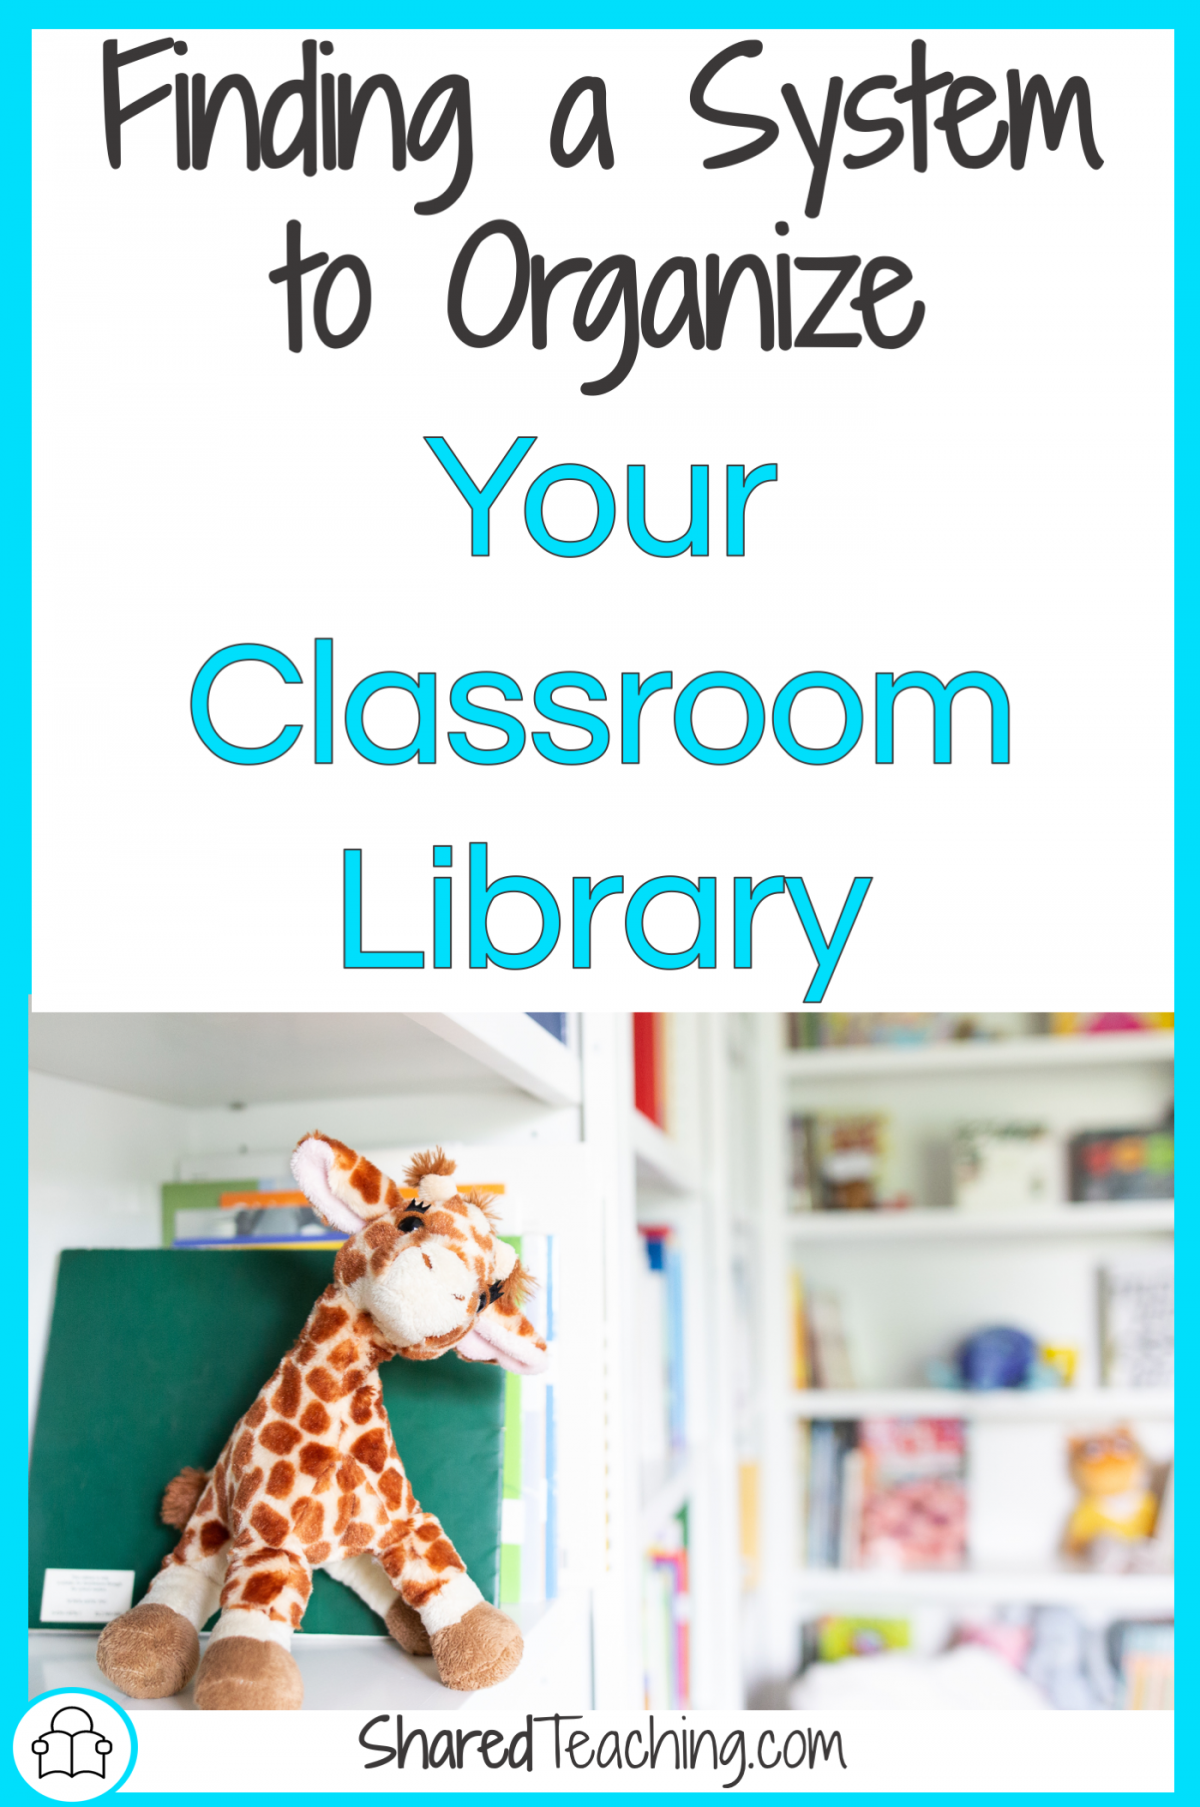 Finding a system to organize your classroom library.